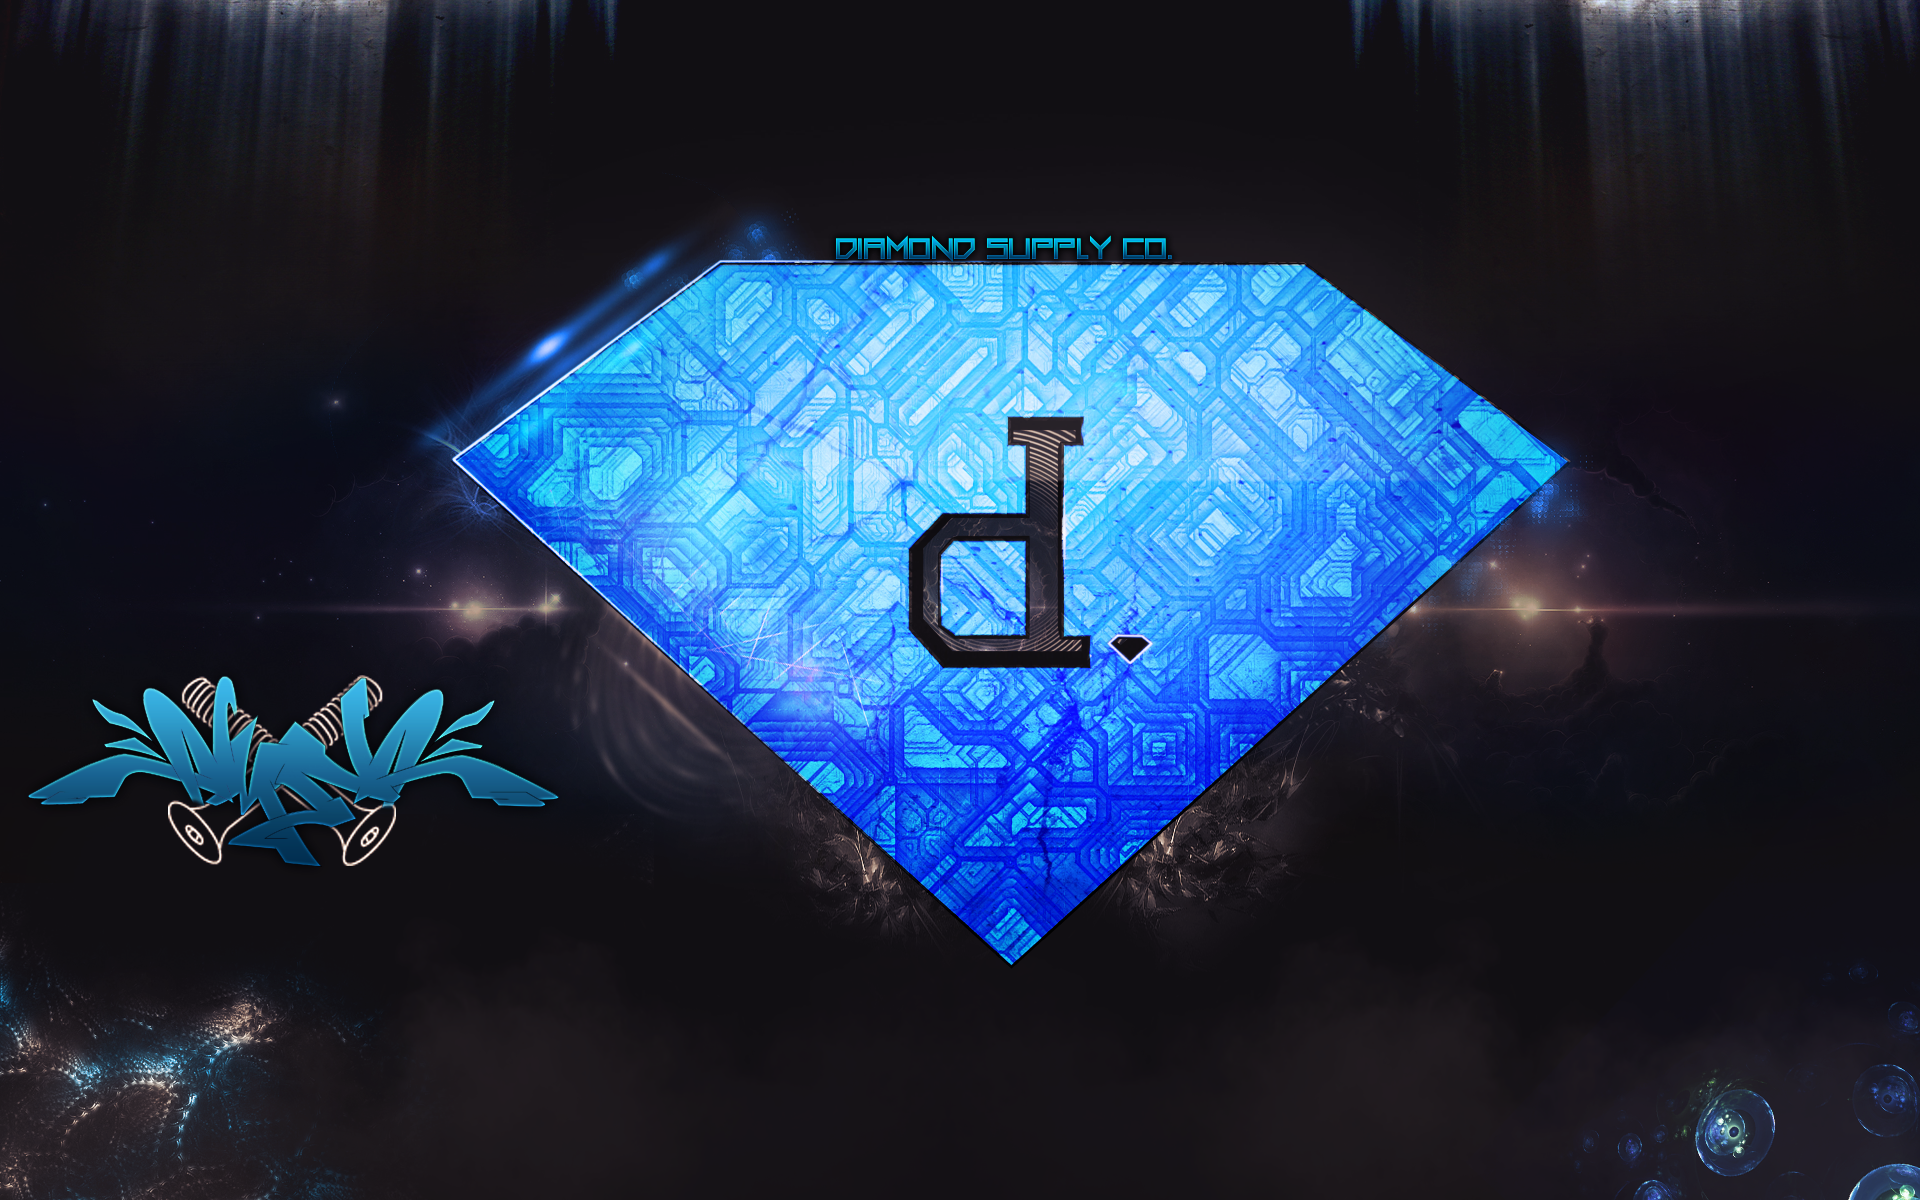 Diamond Supply Co. Wallpaper. by FlowDesiigns on DeviantArt - photo#17